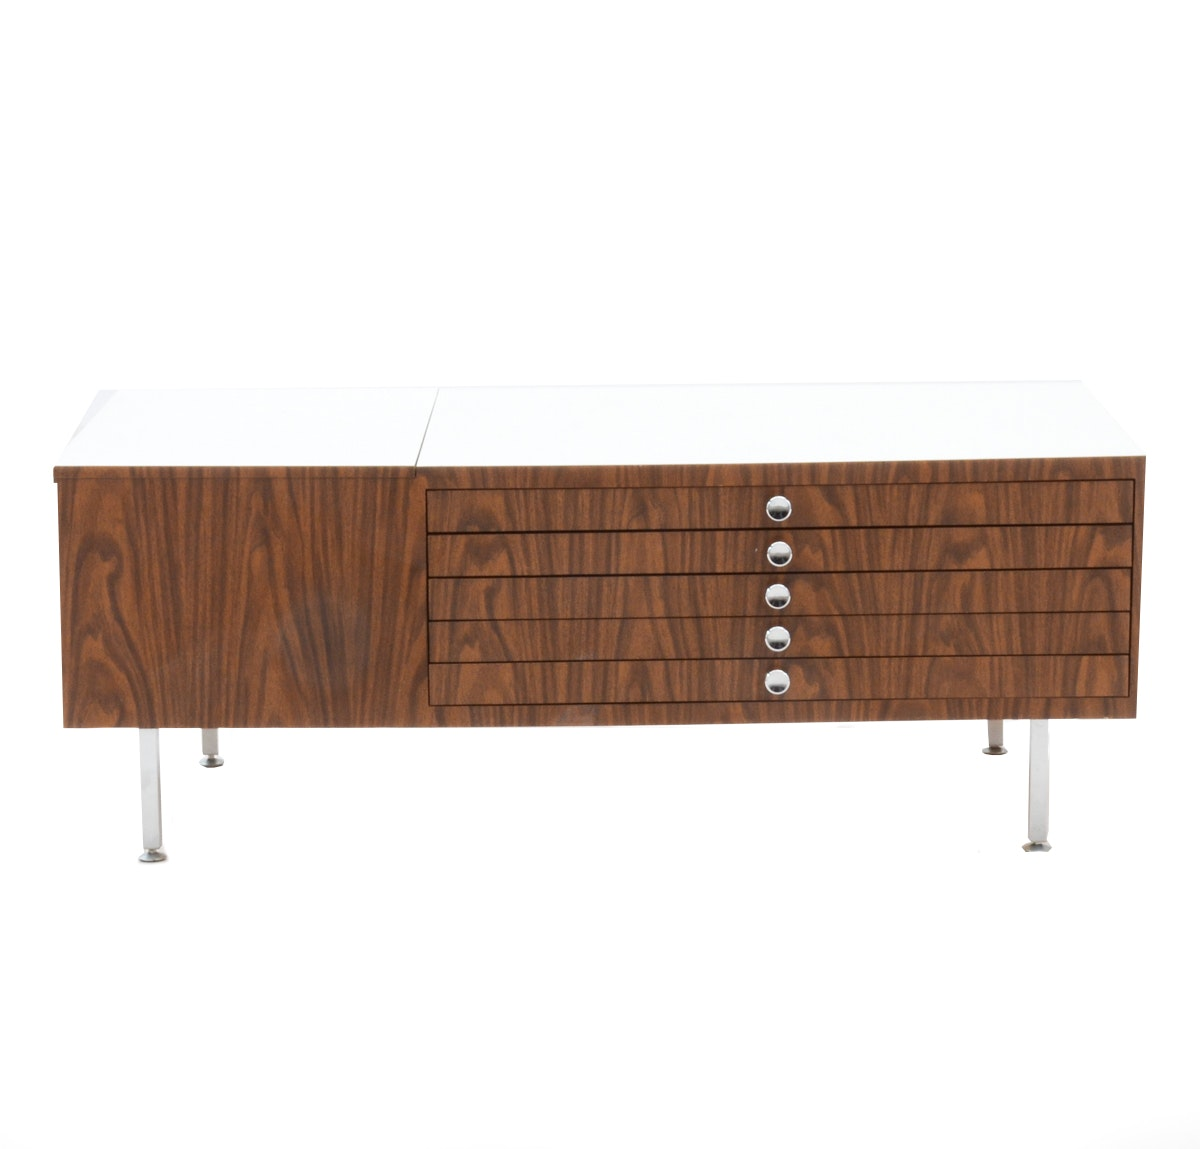 Mid Century Modern Blanket Chest with Drawers